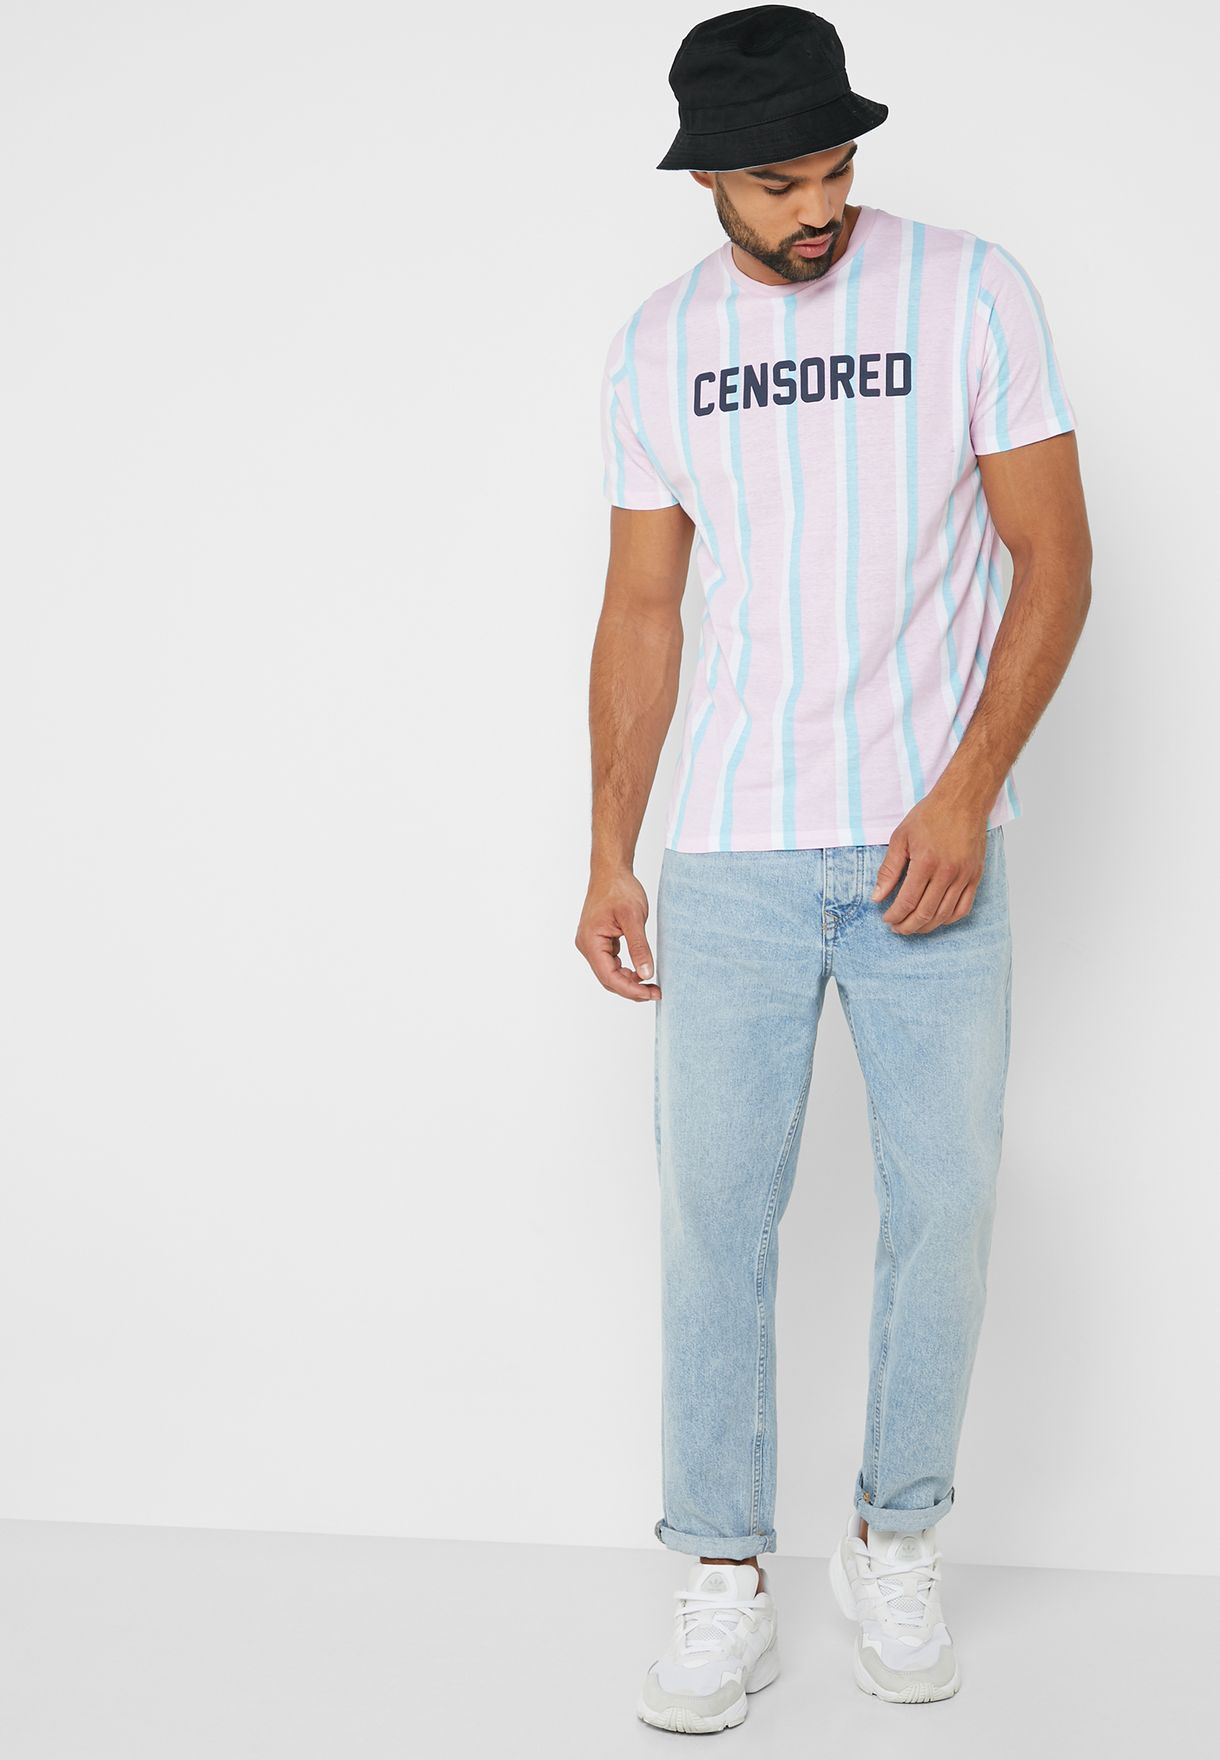 Censored T Shirt